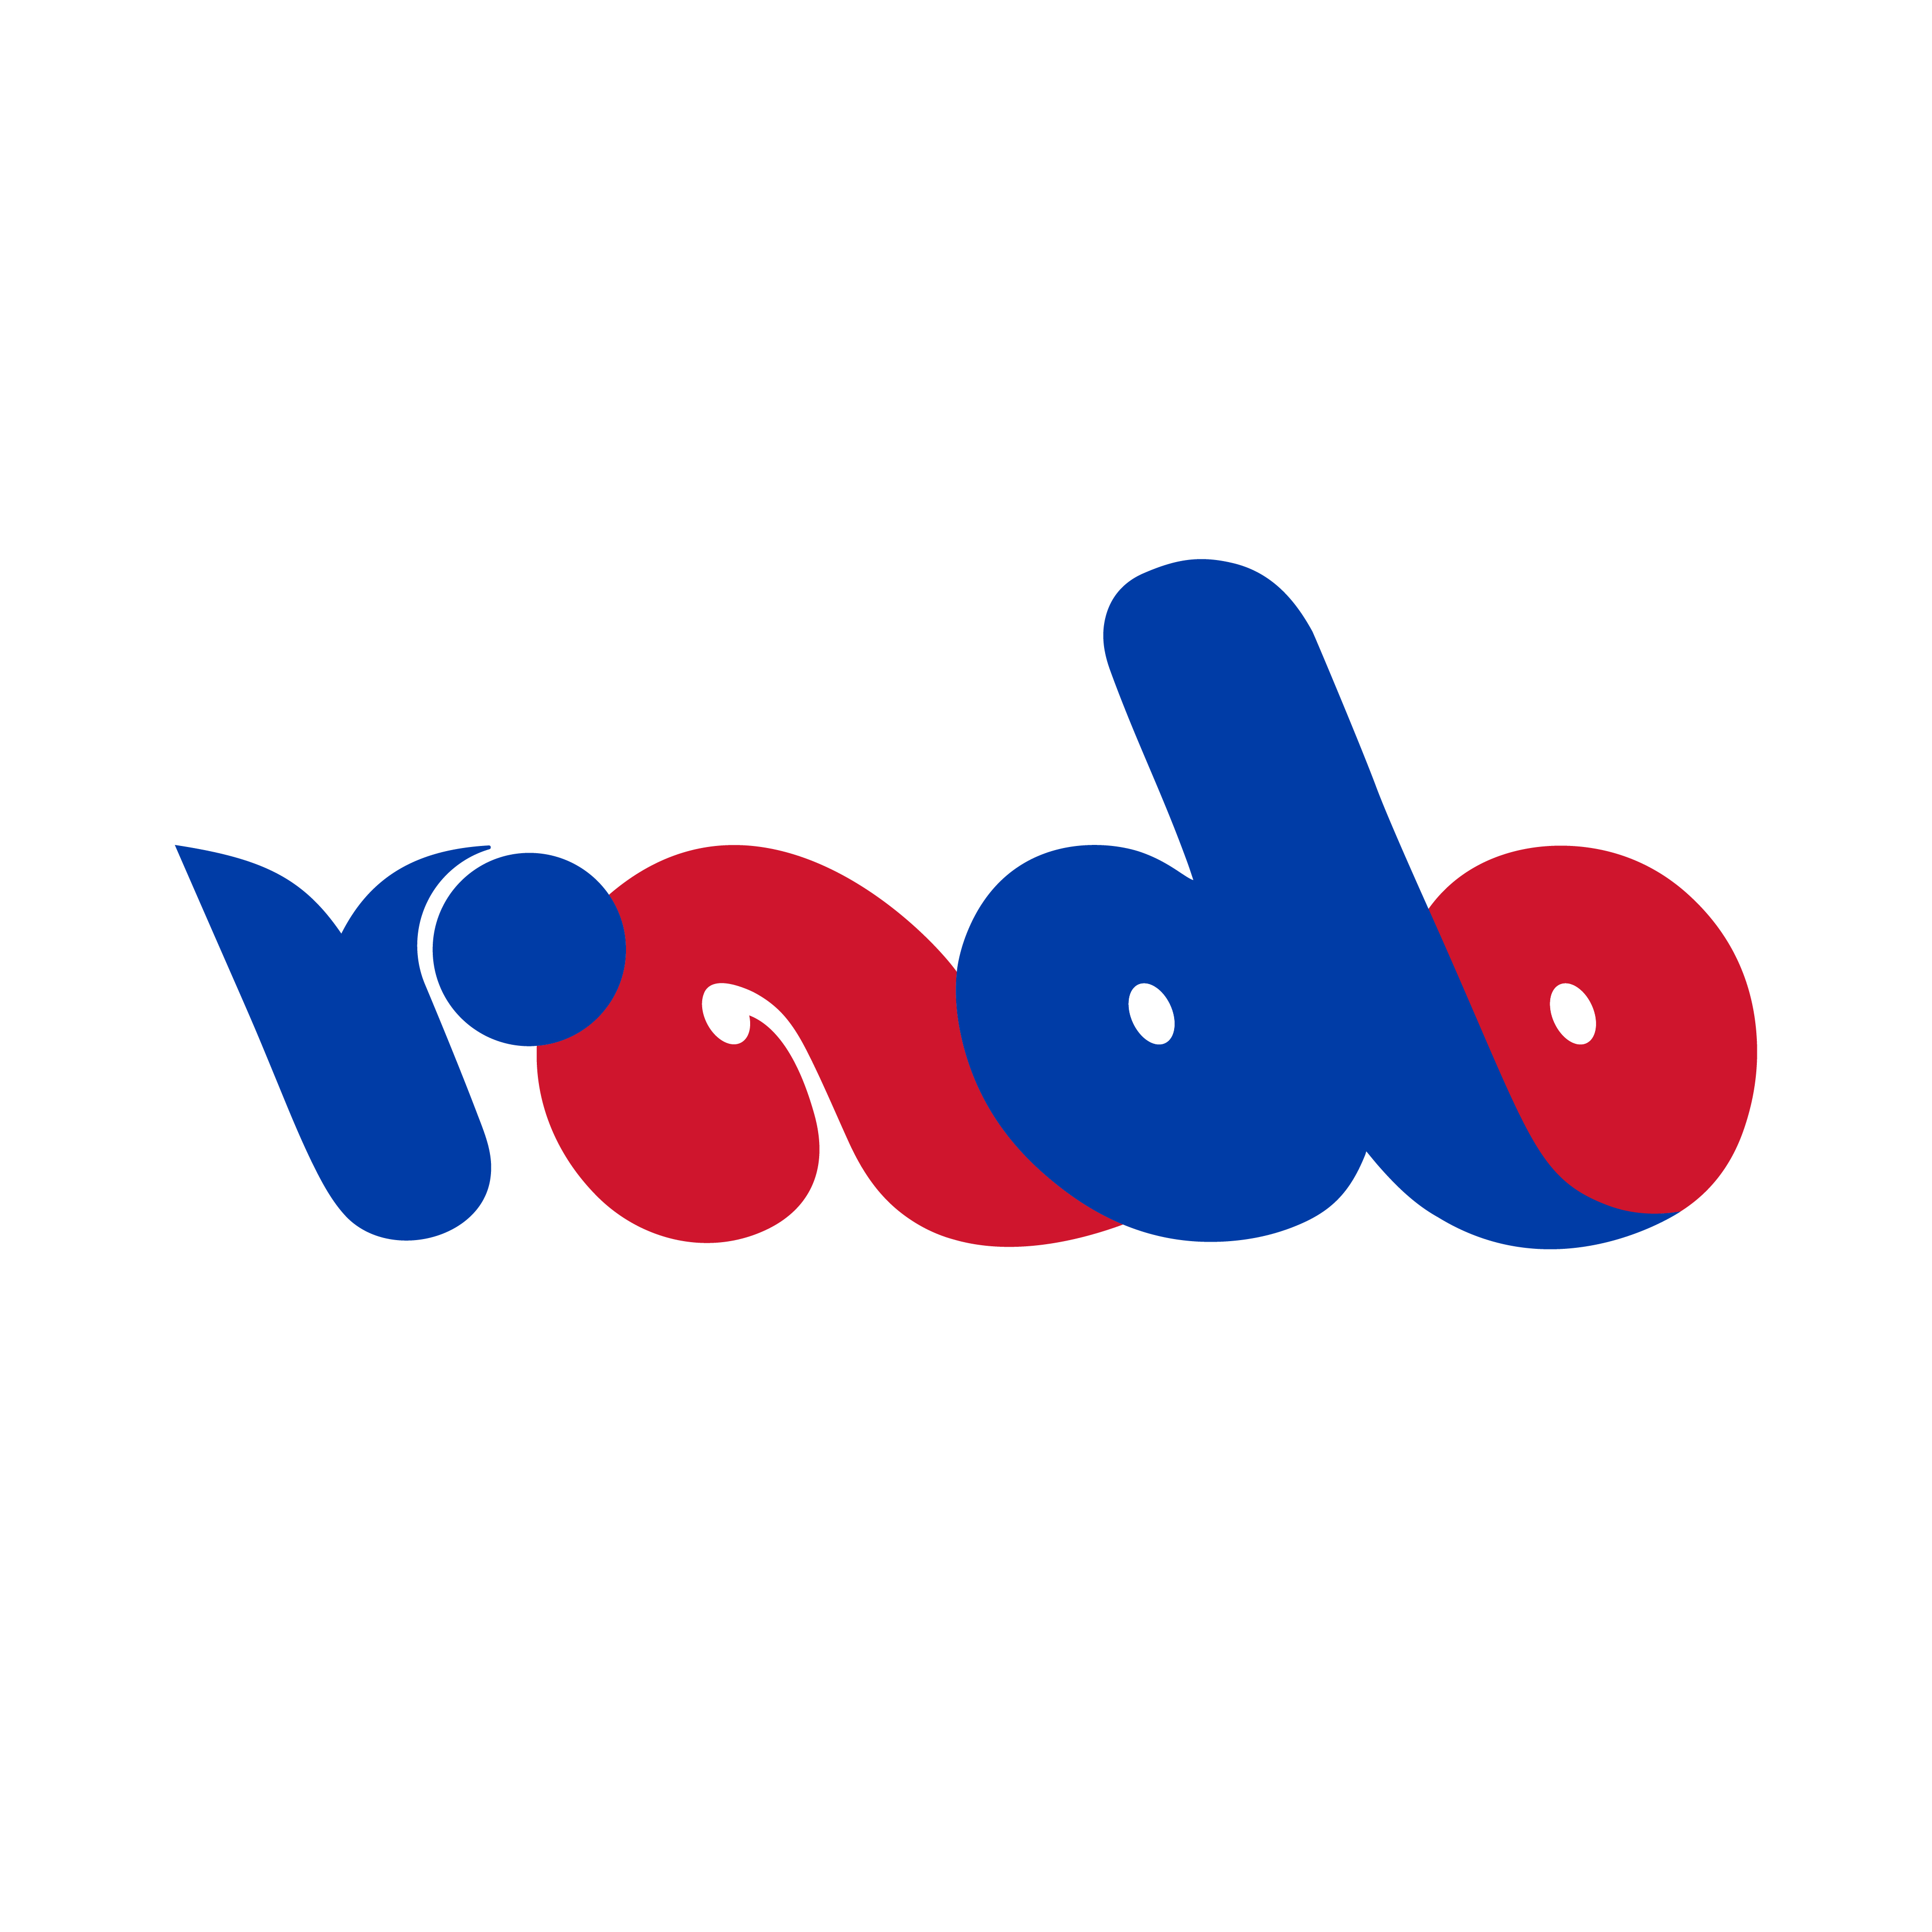 Rado  logo design by logo designer Lifestyles Creative for your inspiration and for the worlds largest logo competition